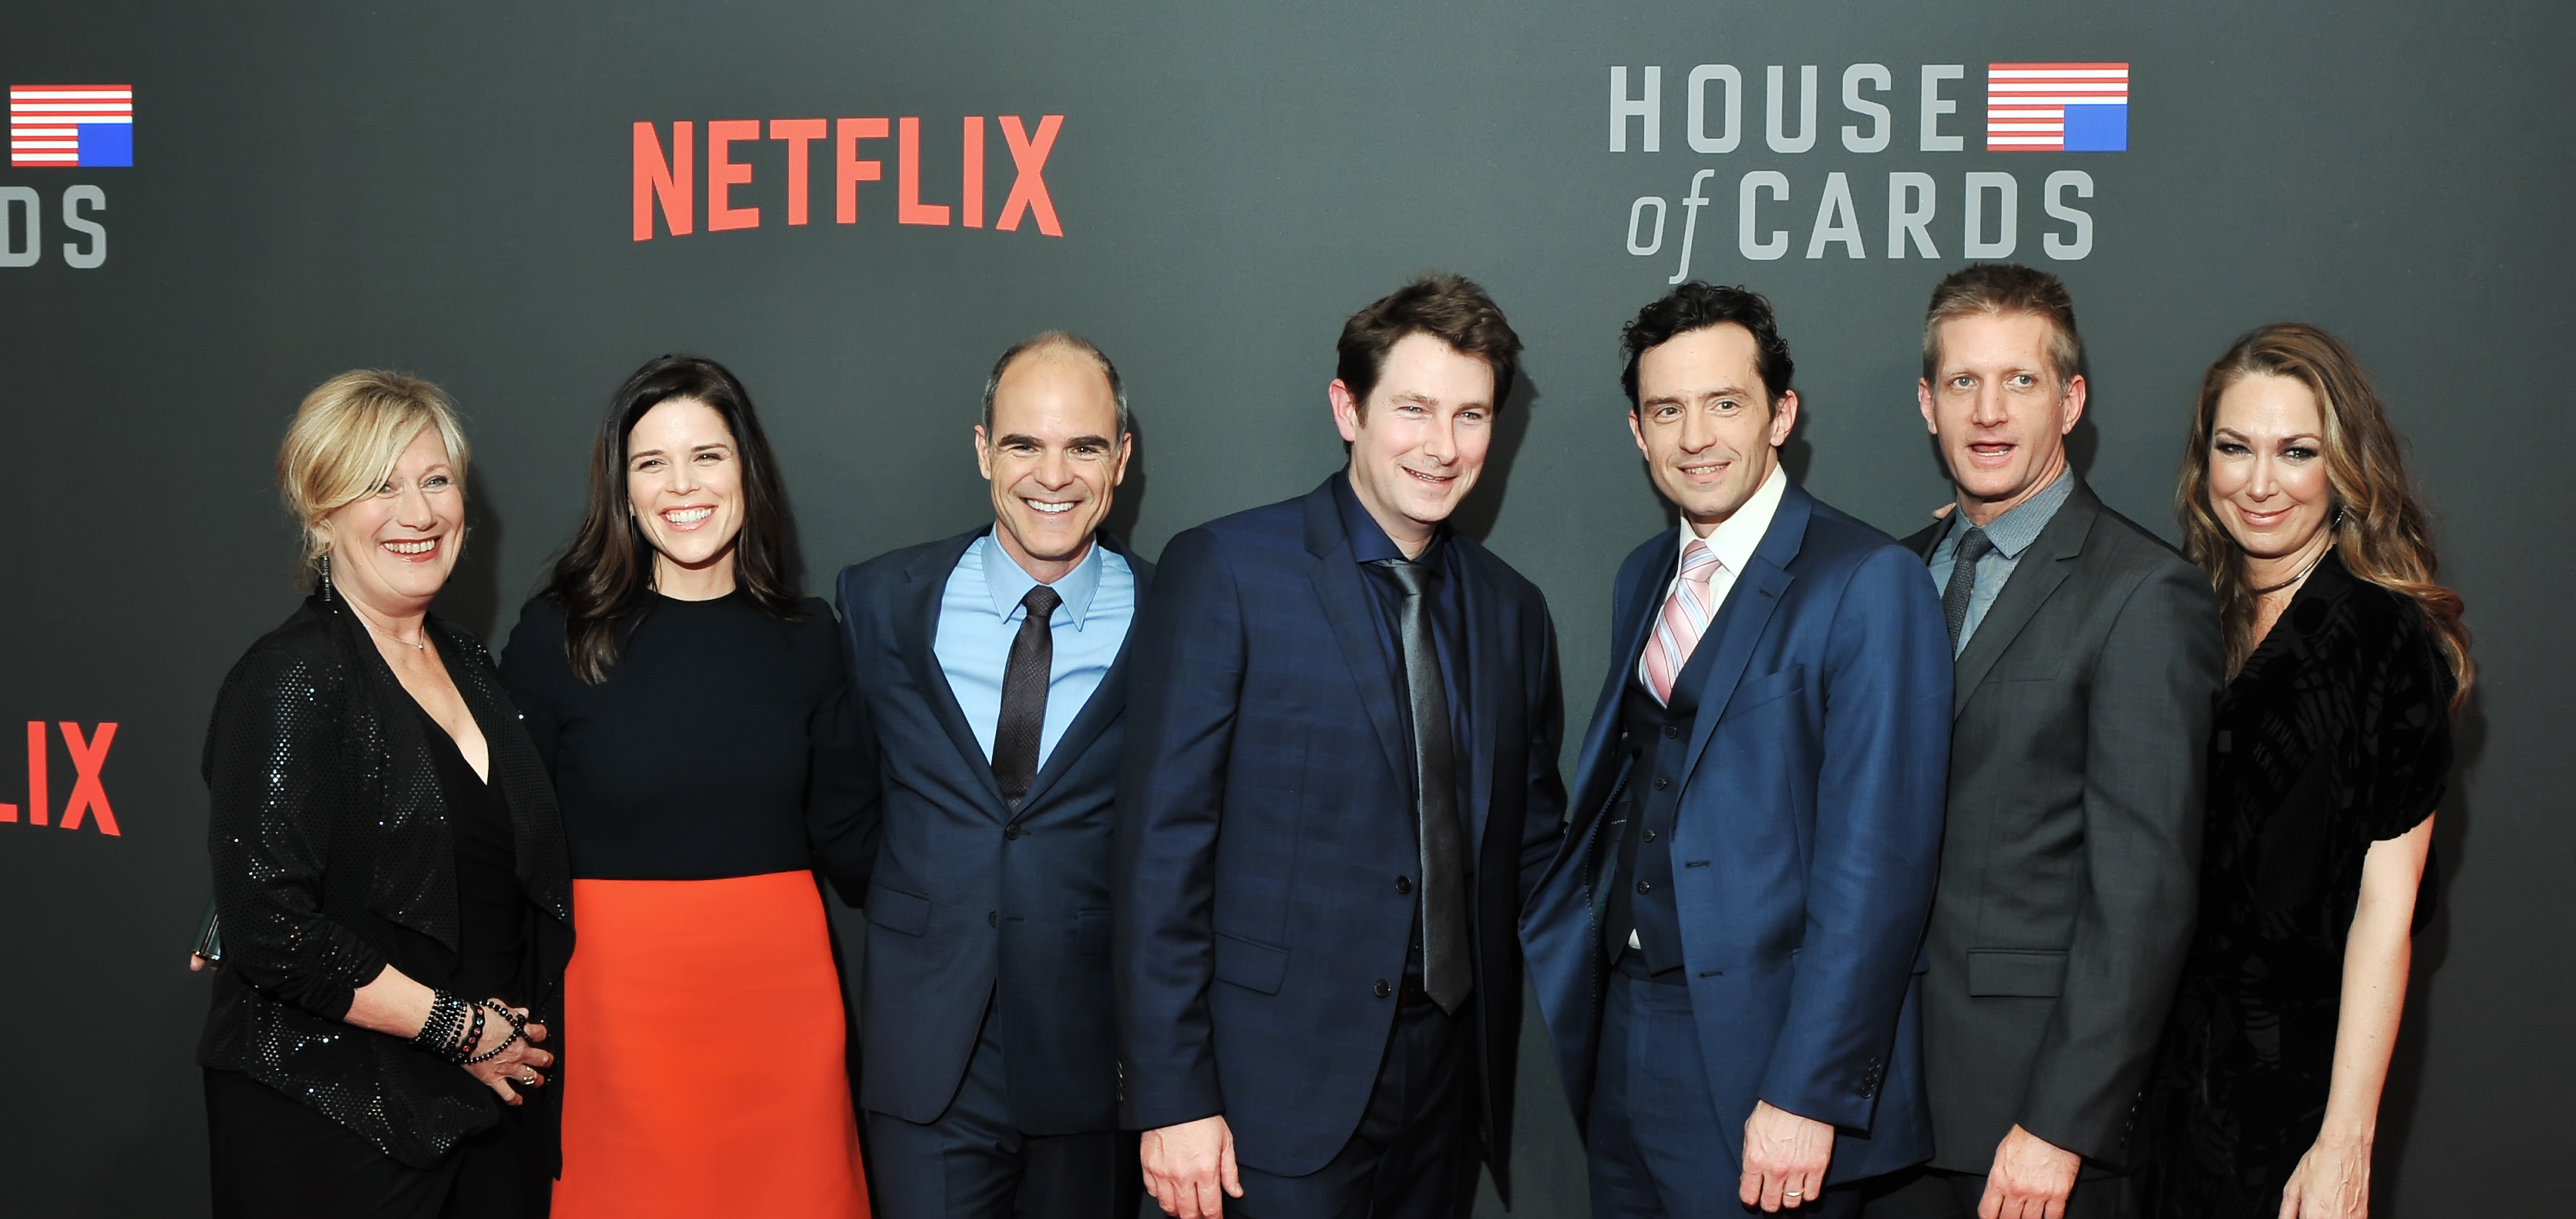 Photos: 'House of Cards' cast debuts season 4 in DC